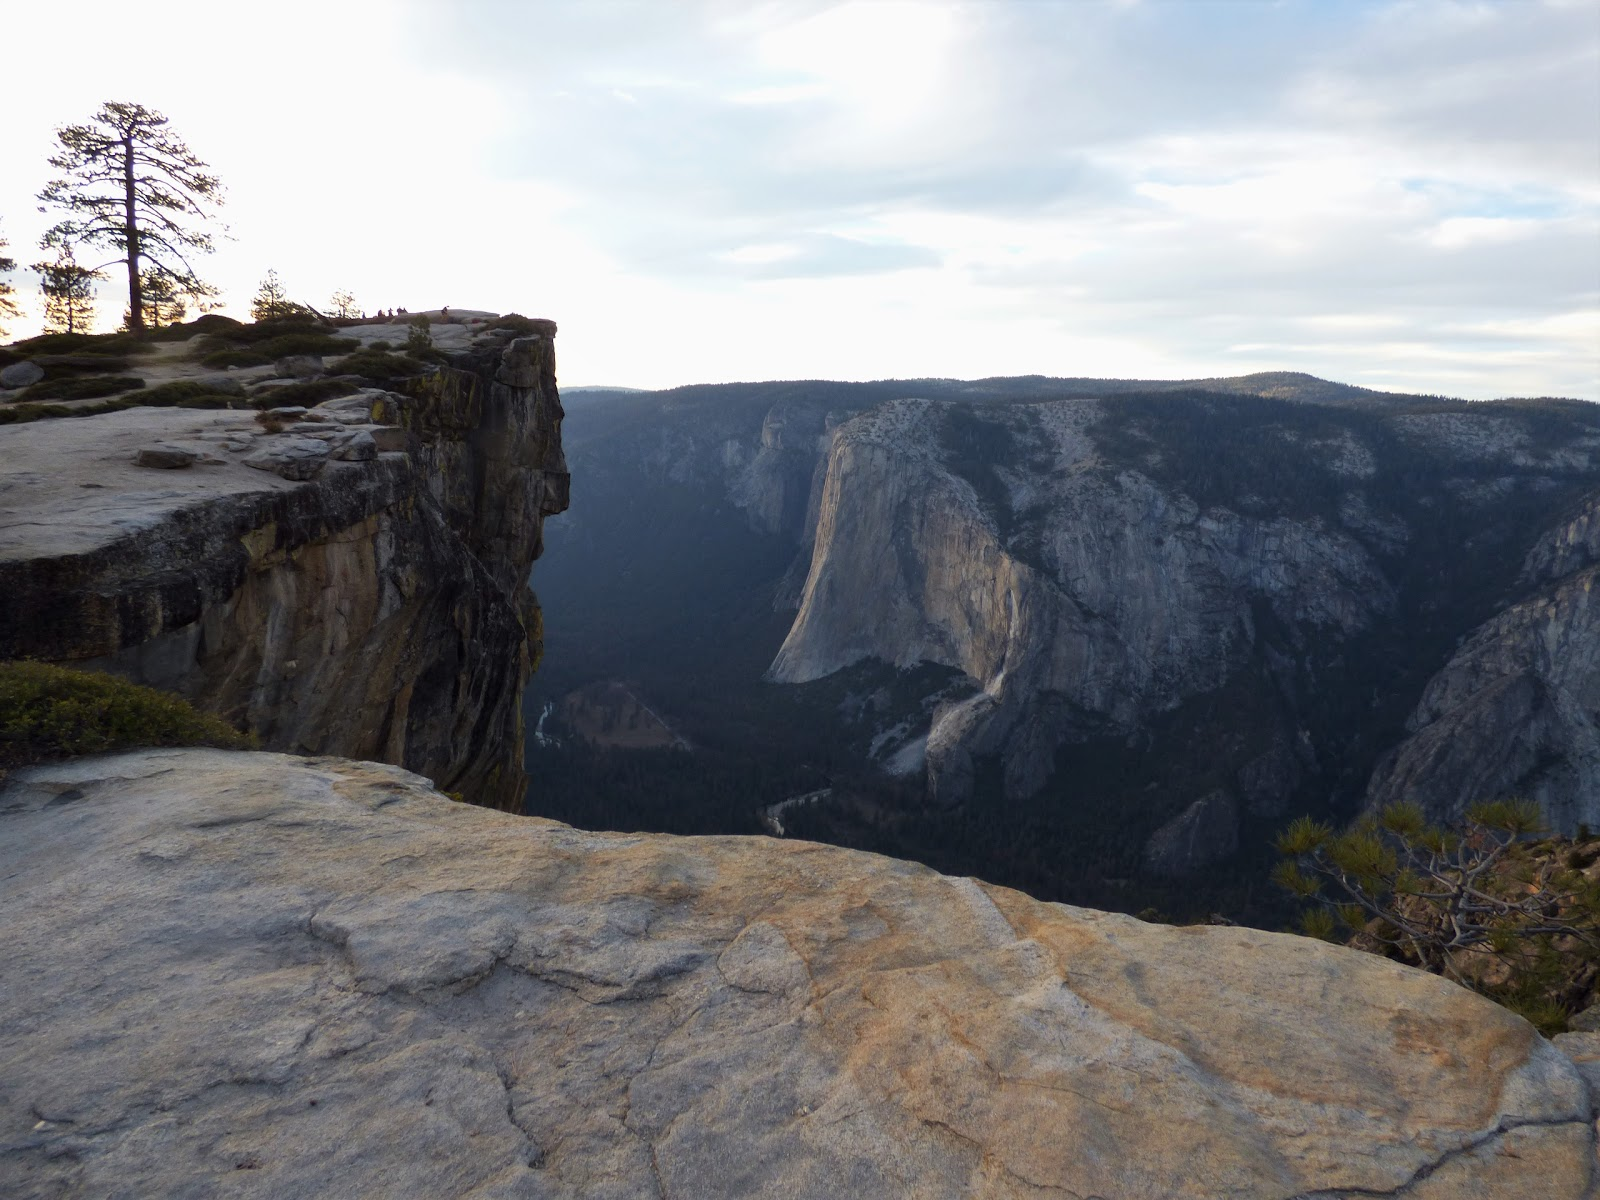 Geotripper: Looking Down on Yosemite: A Return to Taft Point